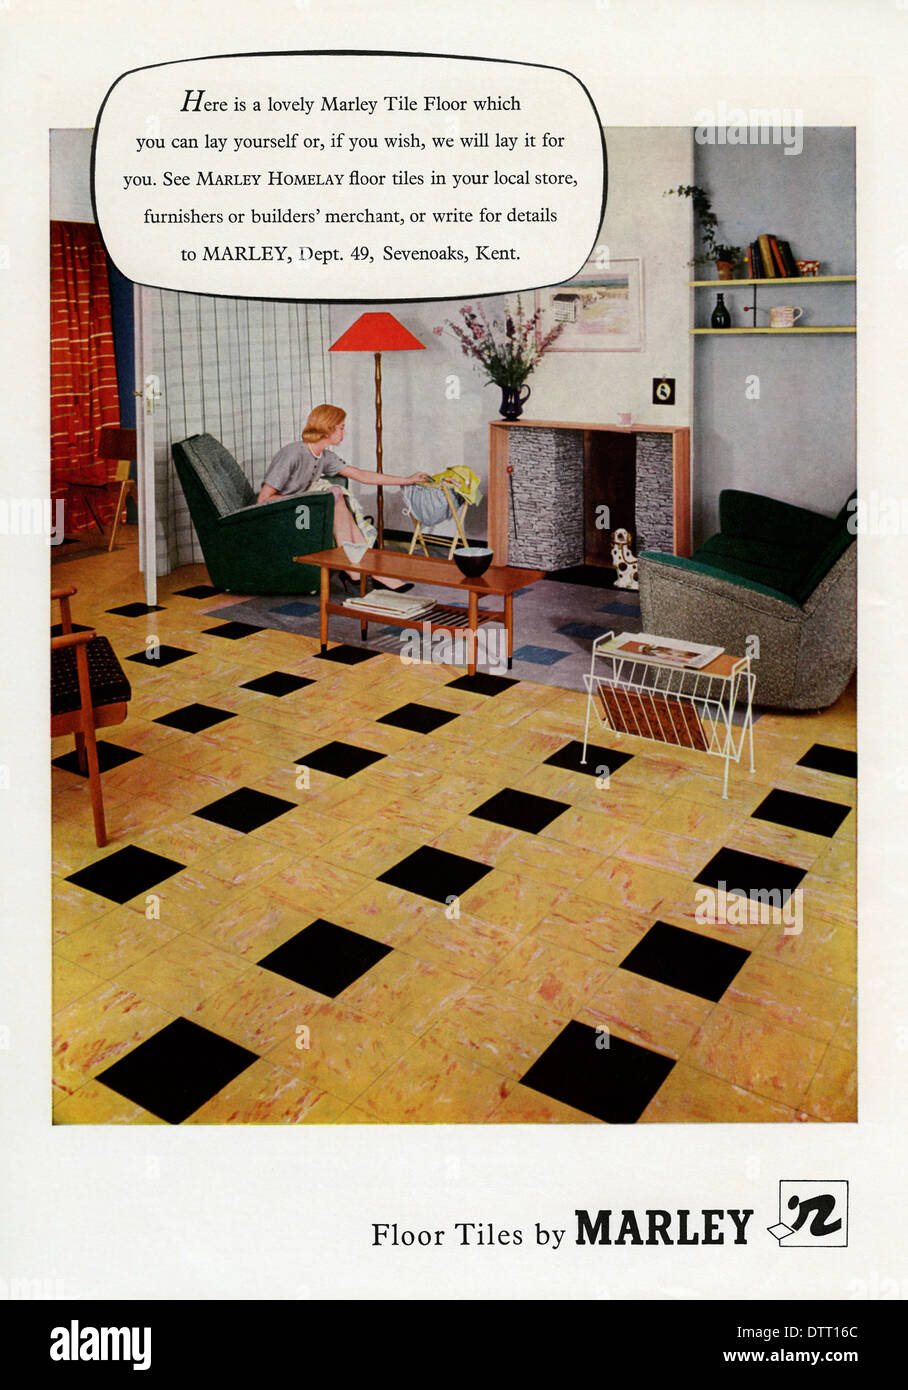 Old advert for marley floor tiles these were hard wearing laminated old advert for marley floor tiles these were hard wearing laminated tiles the advert appeared in a magazine in 1956 dailygadgetfo Choice Image